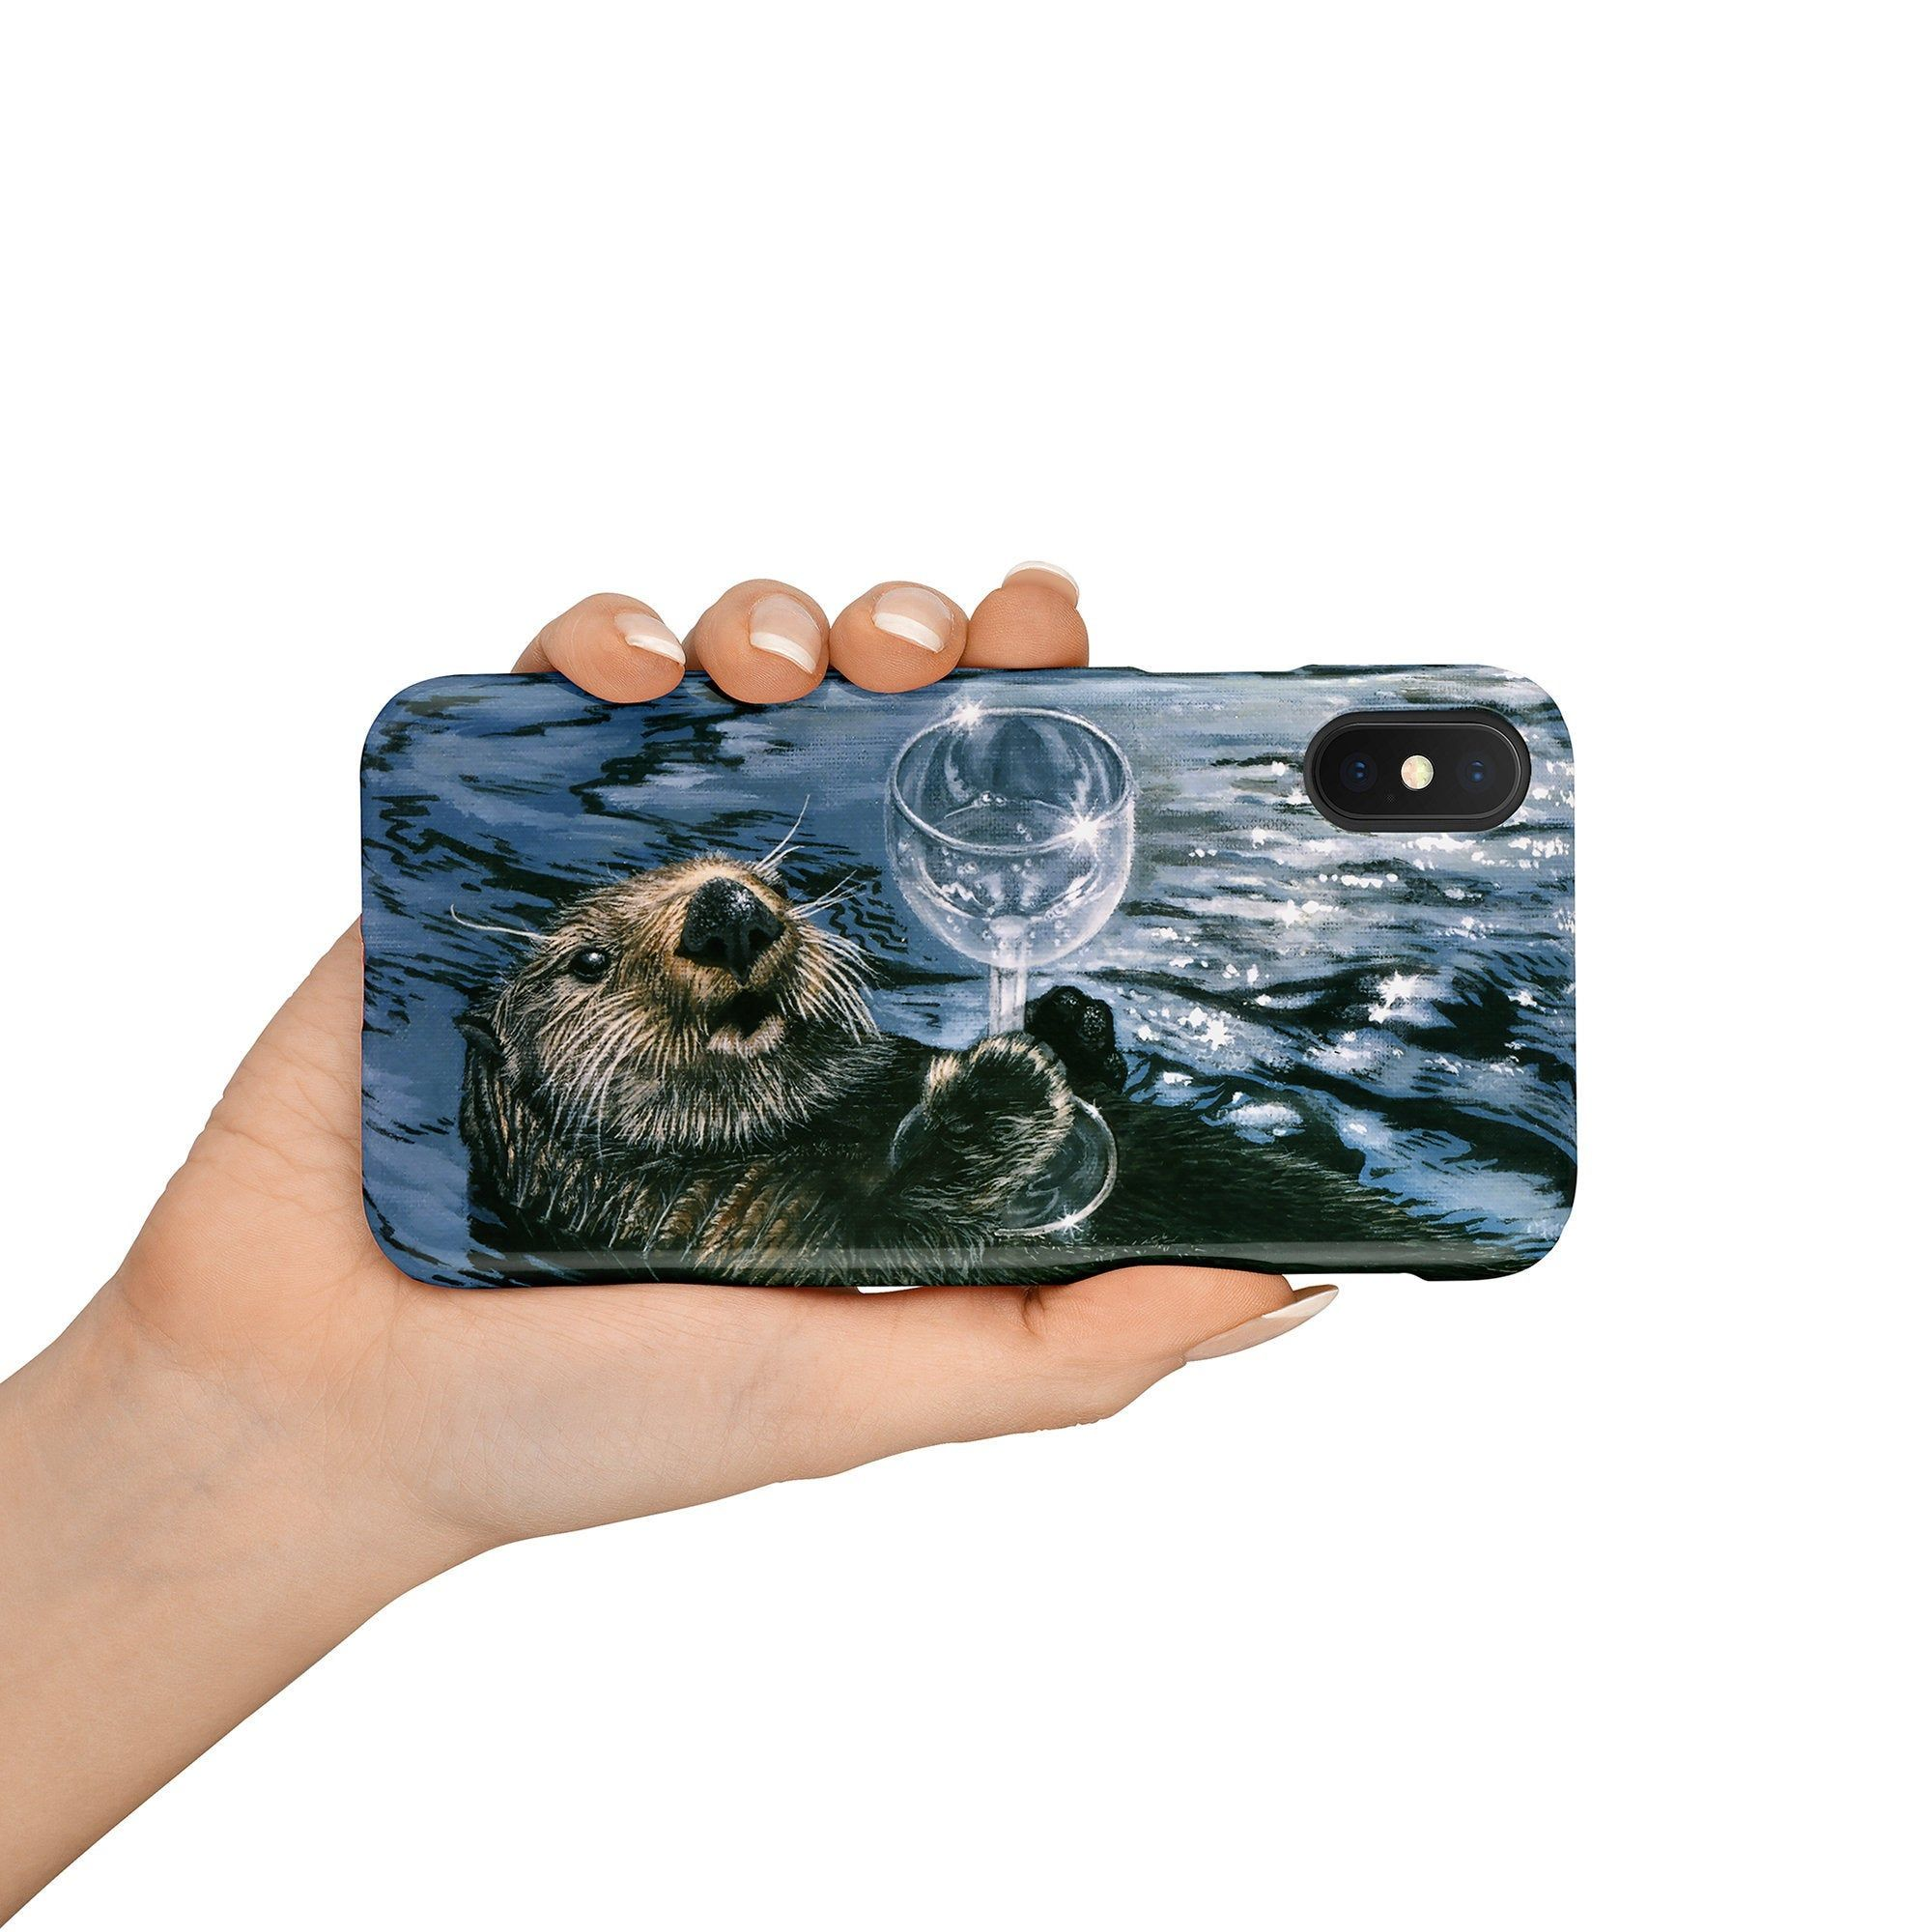 Otter Phone Cases, Cute Otter, Sea Otter, iPhone Cases, Samsung Phone Cases, Premium Glossy Tough Phone Case, Otter Lover Gift, Ocean Lover